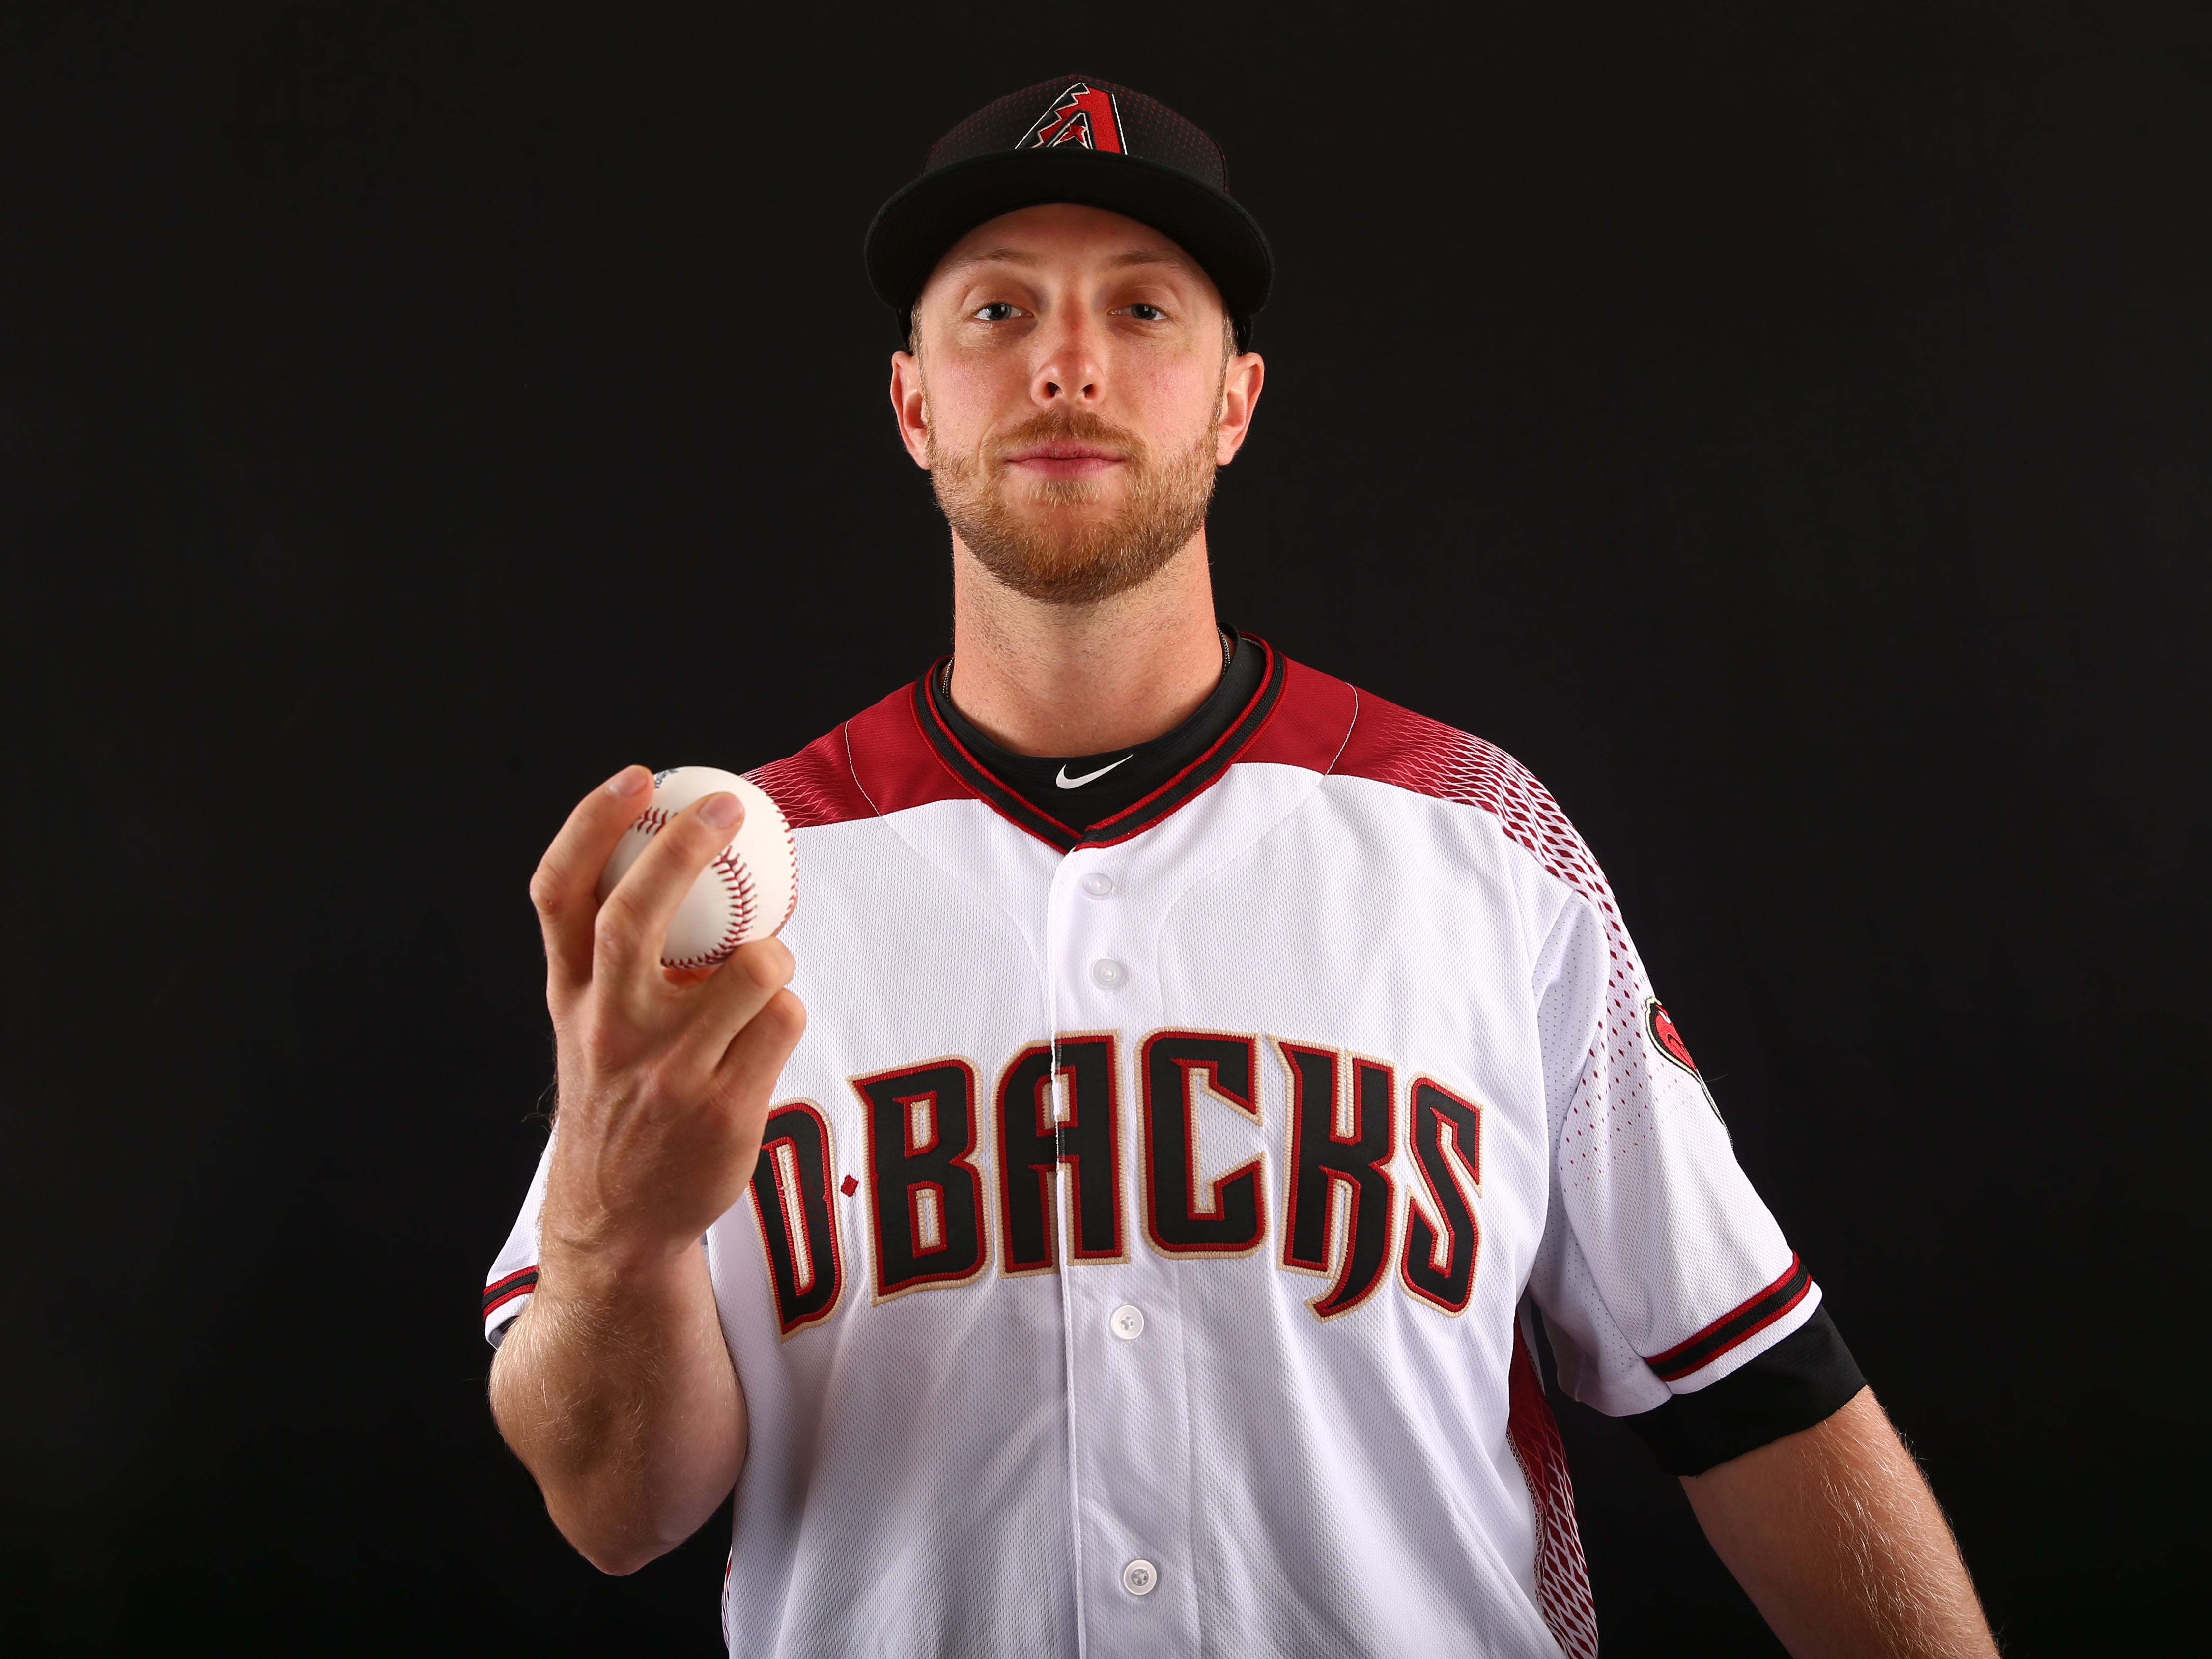 Merrill Kelly of the Arizona Diamondbacks poses for a photo during the annual Spring Training Photo Day on Feb. 20 at Salt River Fields in Scottsdale, Ariz.